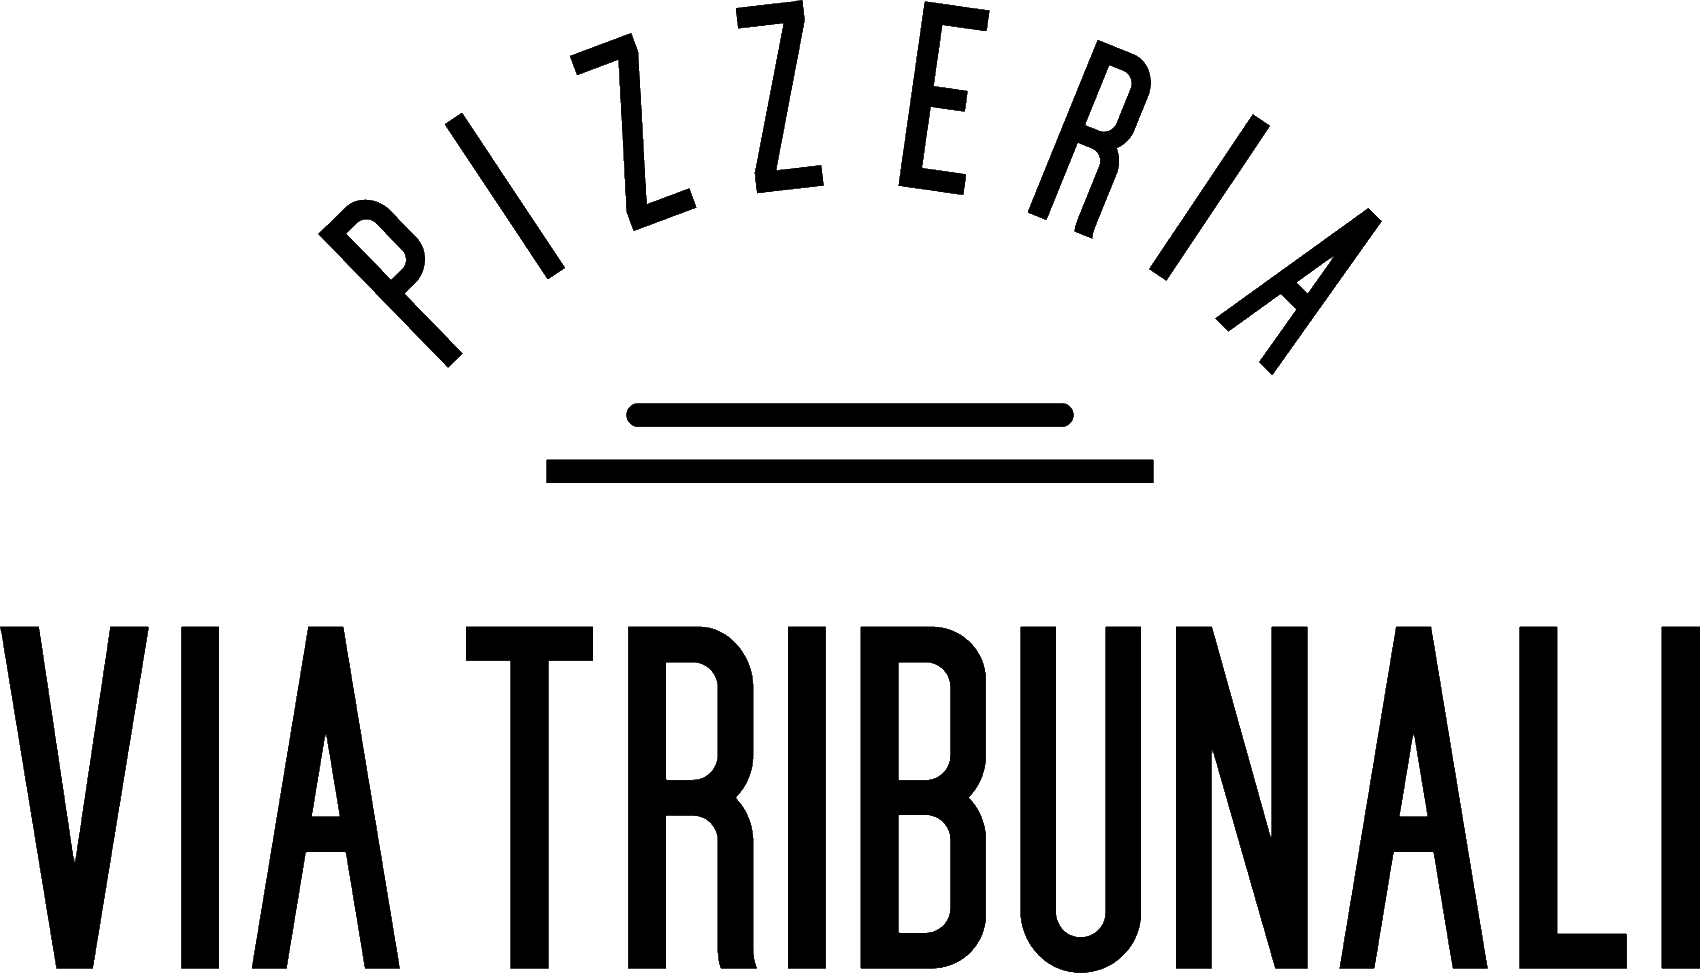 Pizzeria Via Tribunali logo